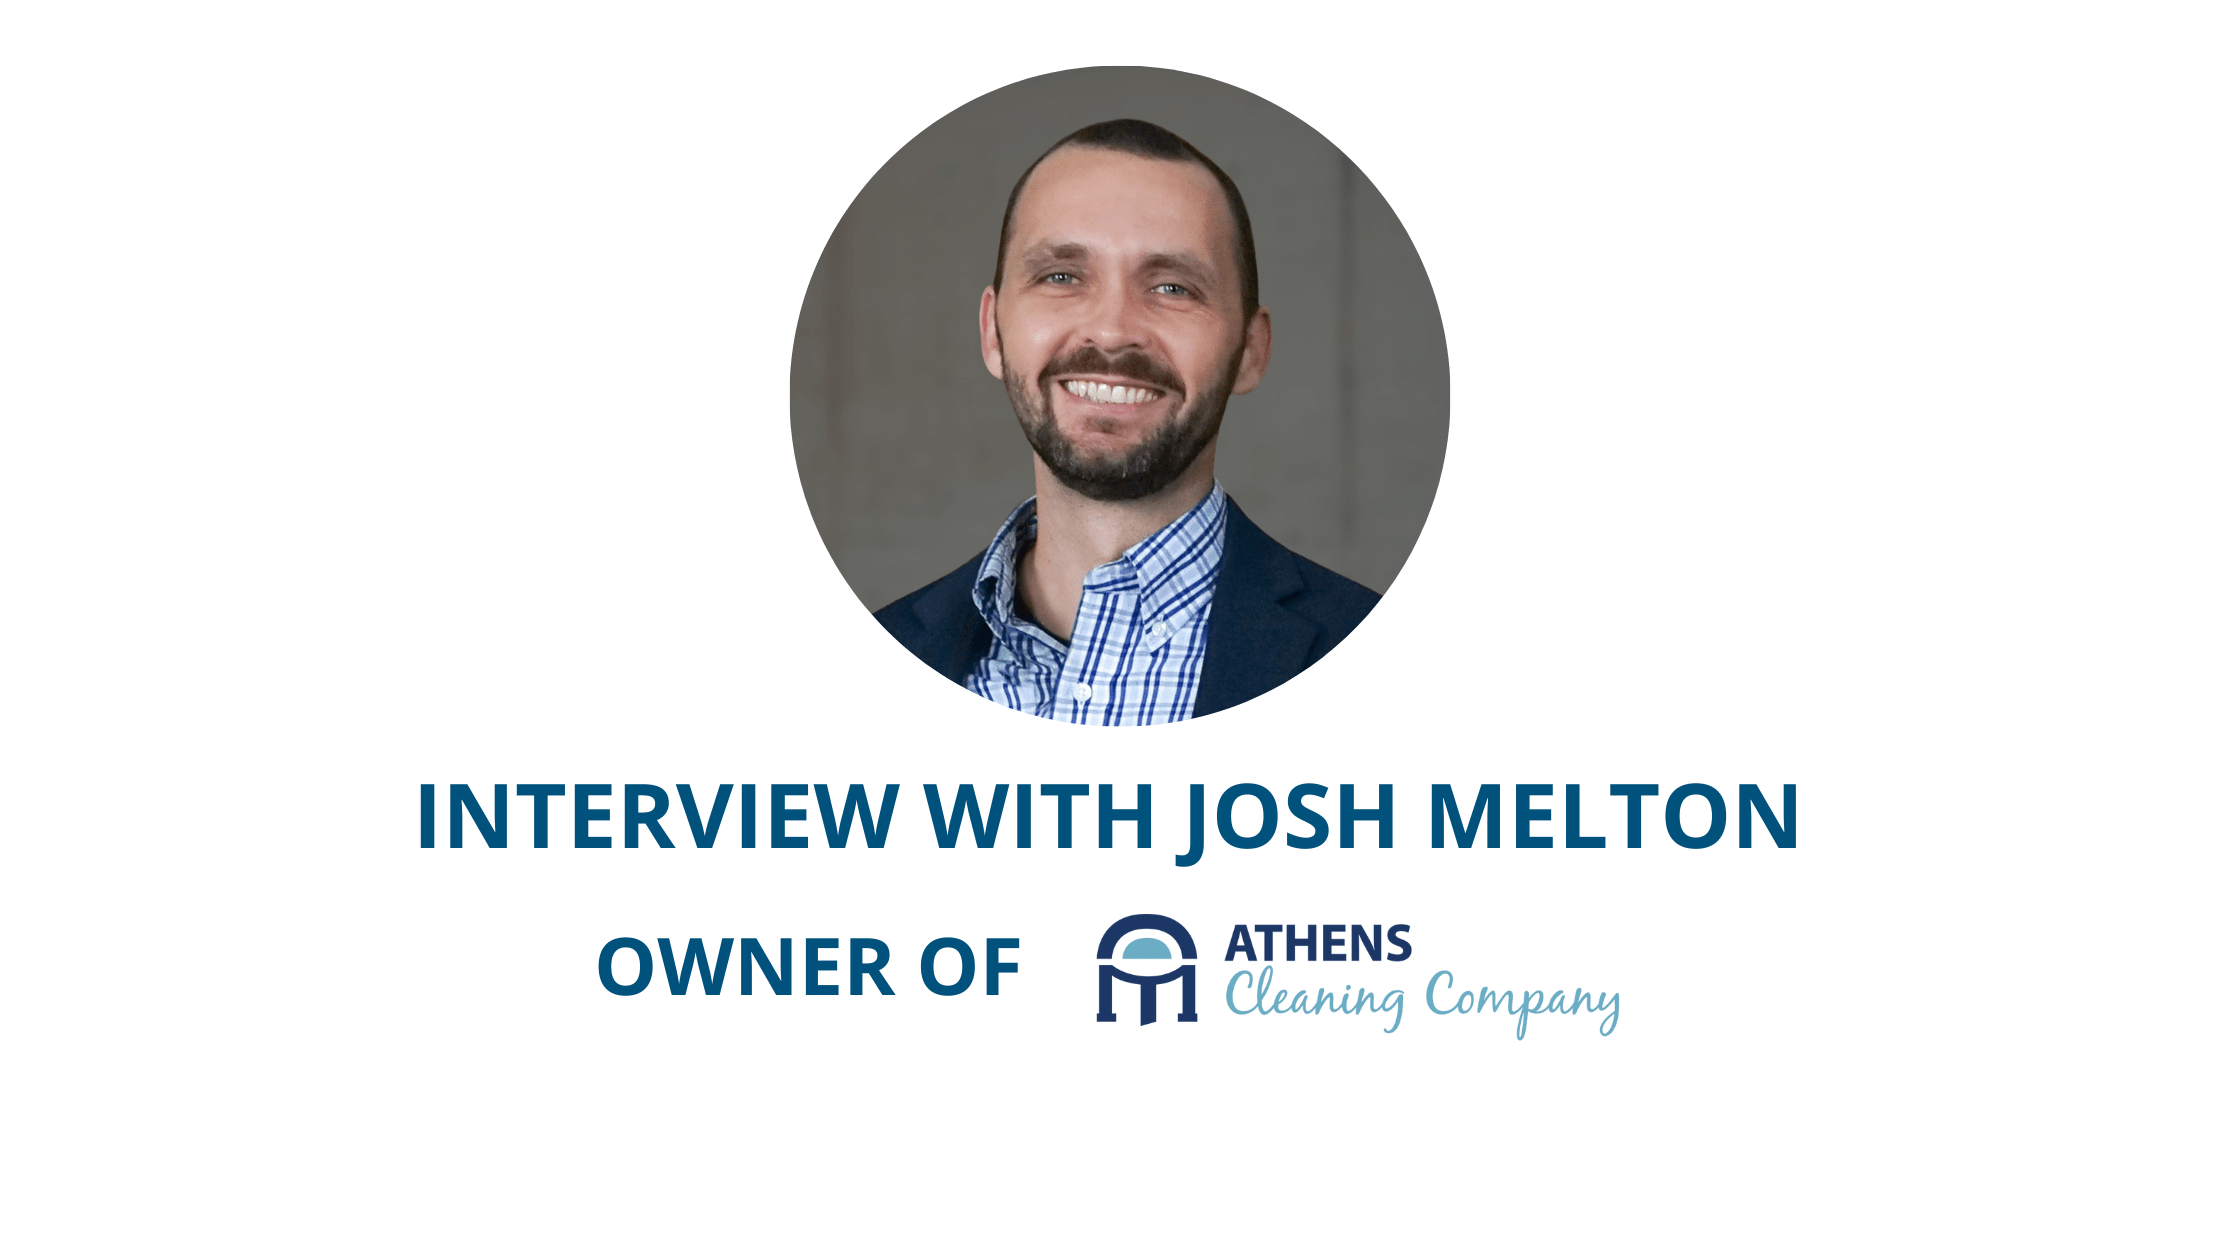 Building, Managing & Growing A Cleaning Business with Josh Melton